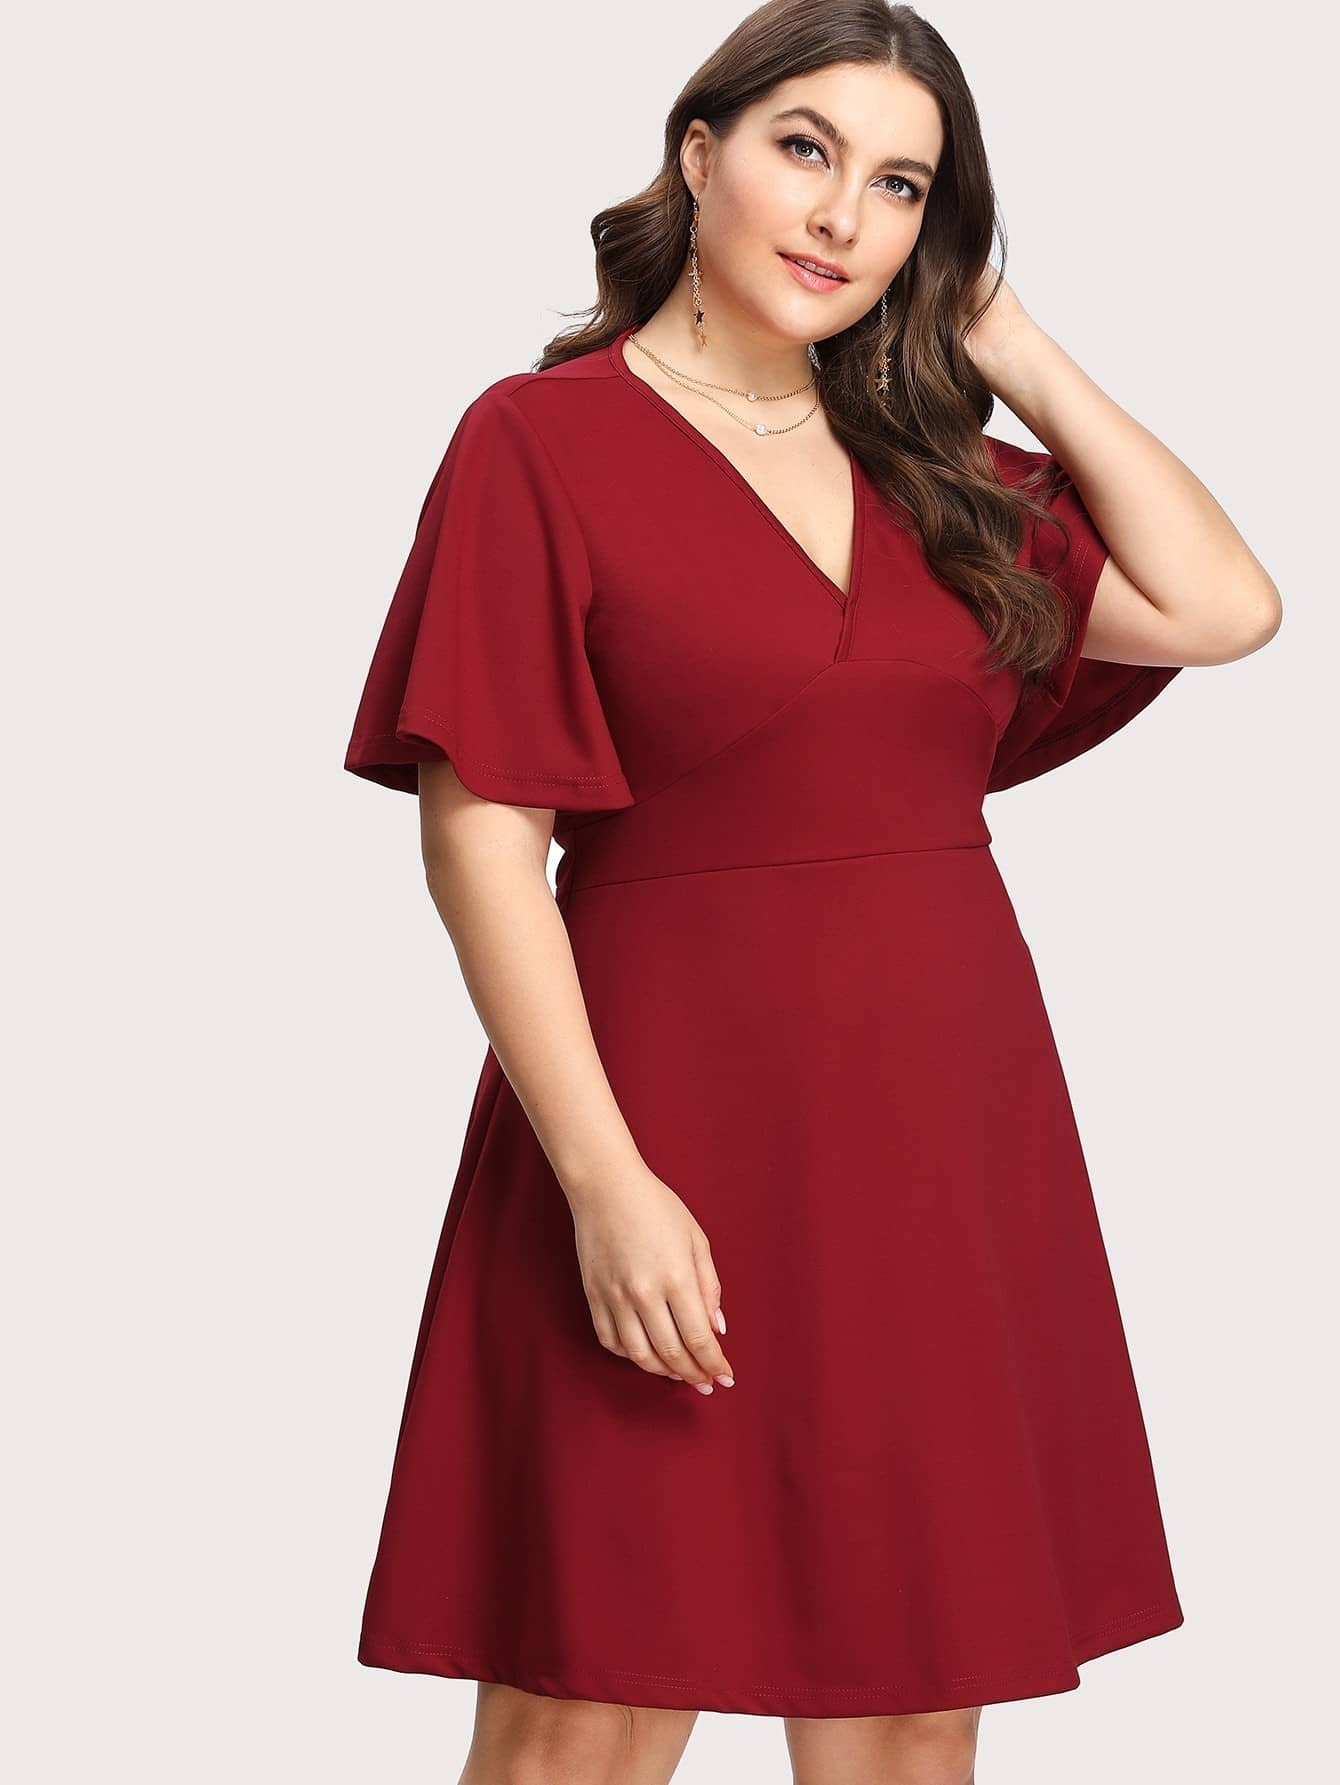 Robe ajustee evasee manche papillon french romwe for Robe rouge évasée